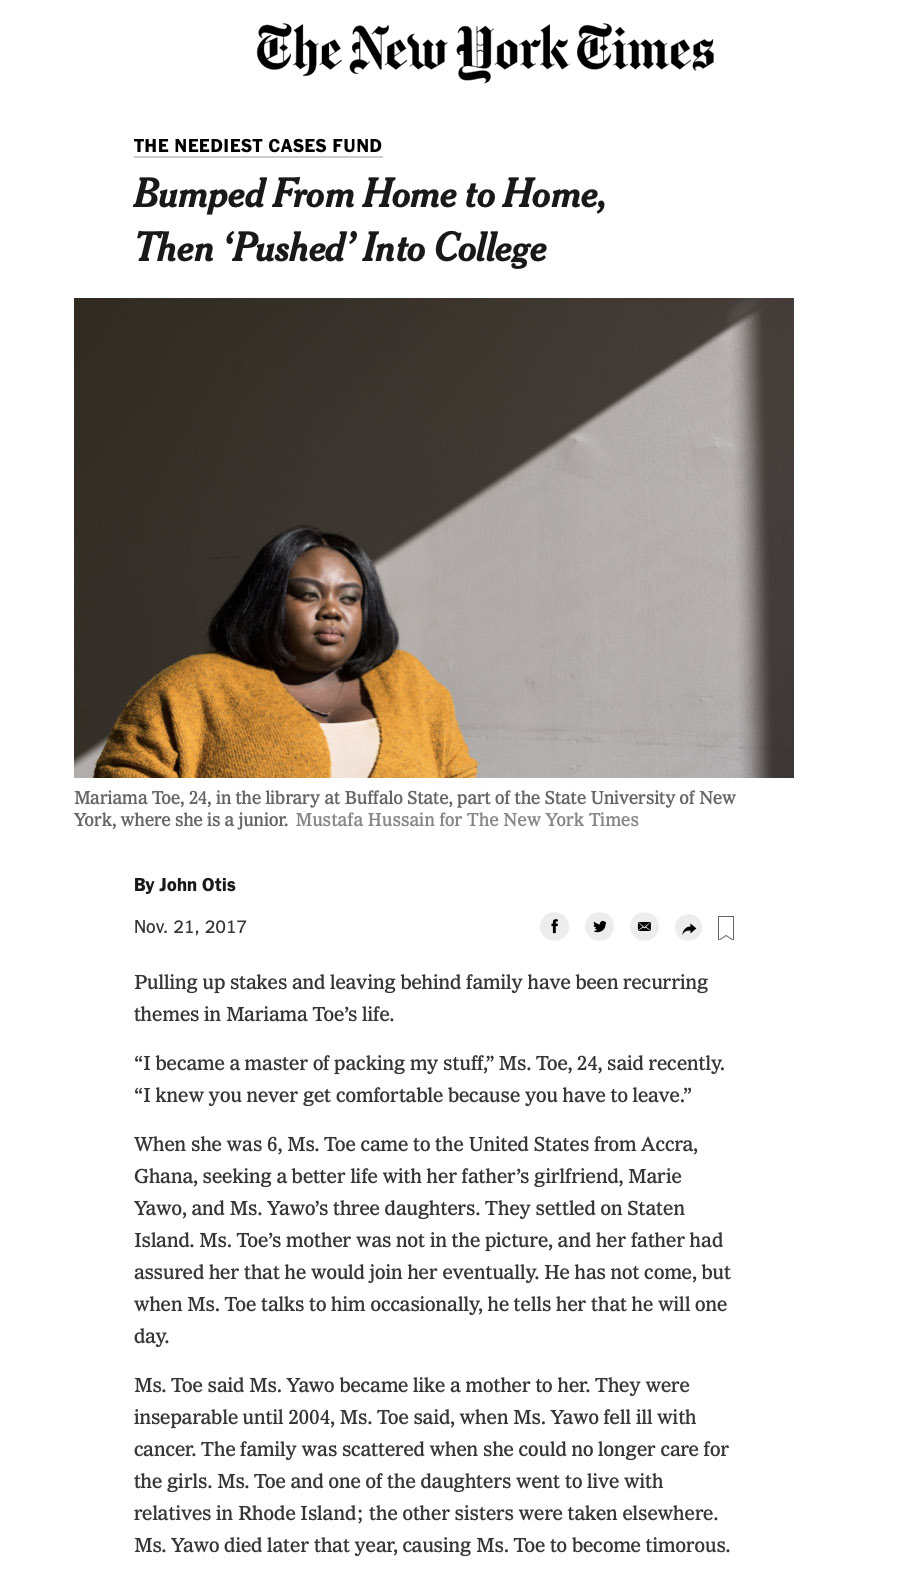 https://www.nytimes.com/2017/11/21/nyregion/bumped-from-home-to-home-then-pushed-into-college.html